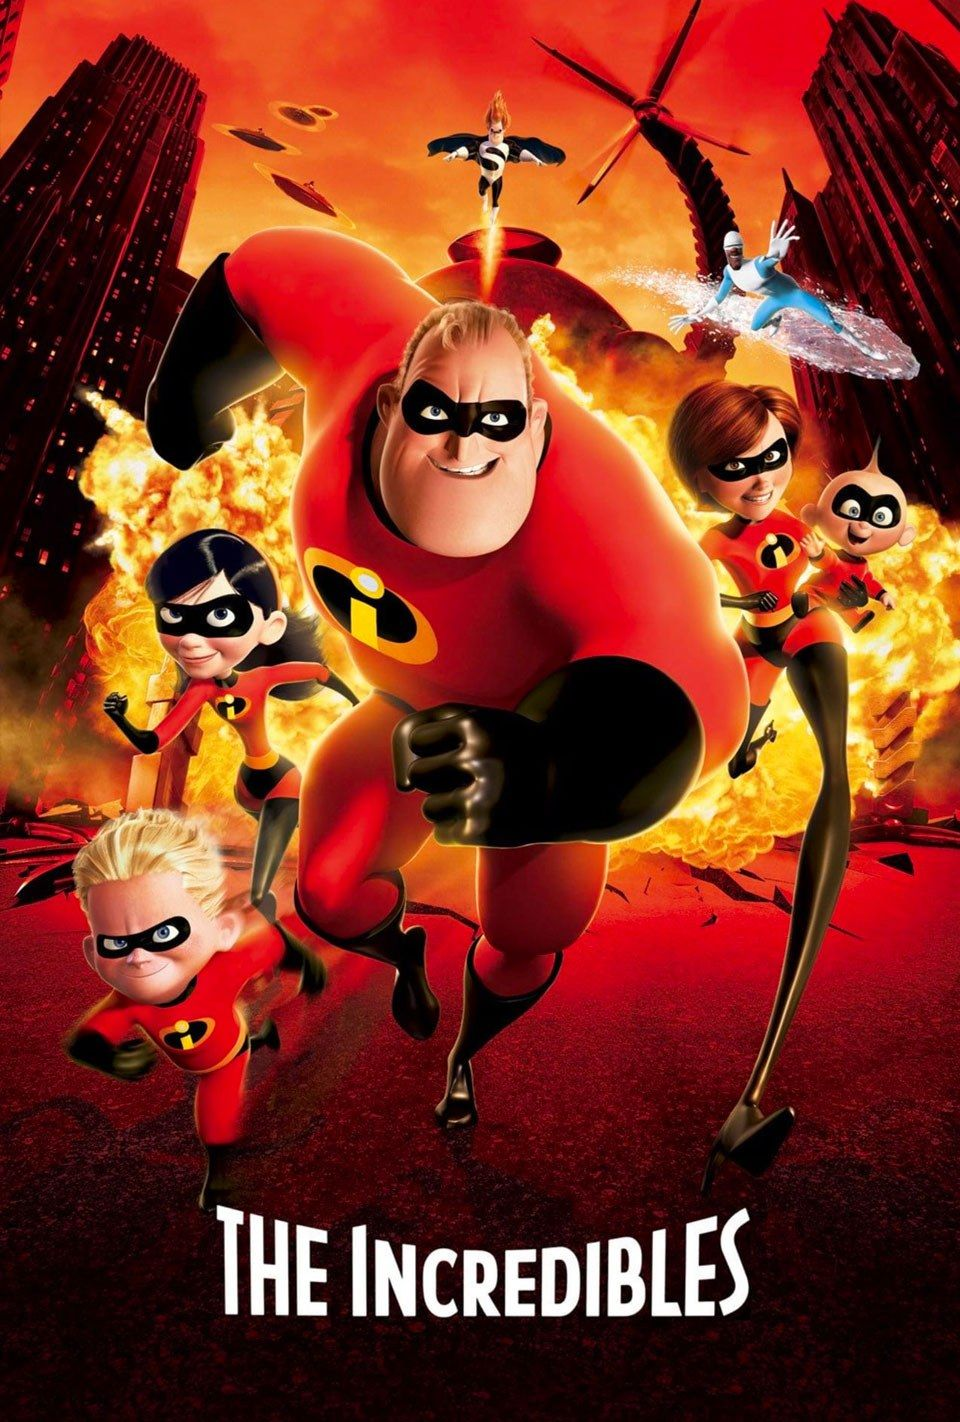 Read The The Incredibles 2004 Script Written By Brad Bird The Incredibles 2004 The Incredibles Disney Movie Posters